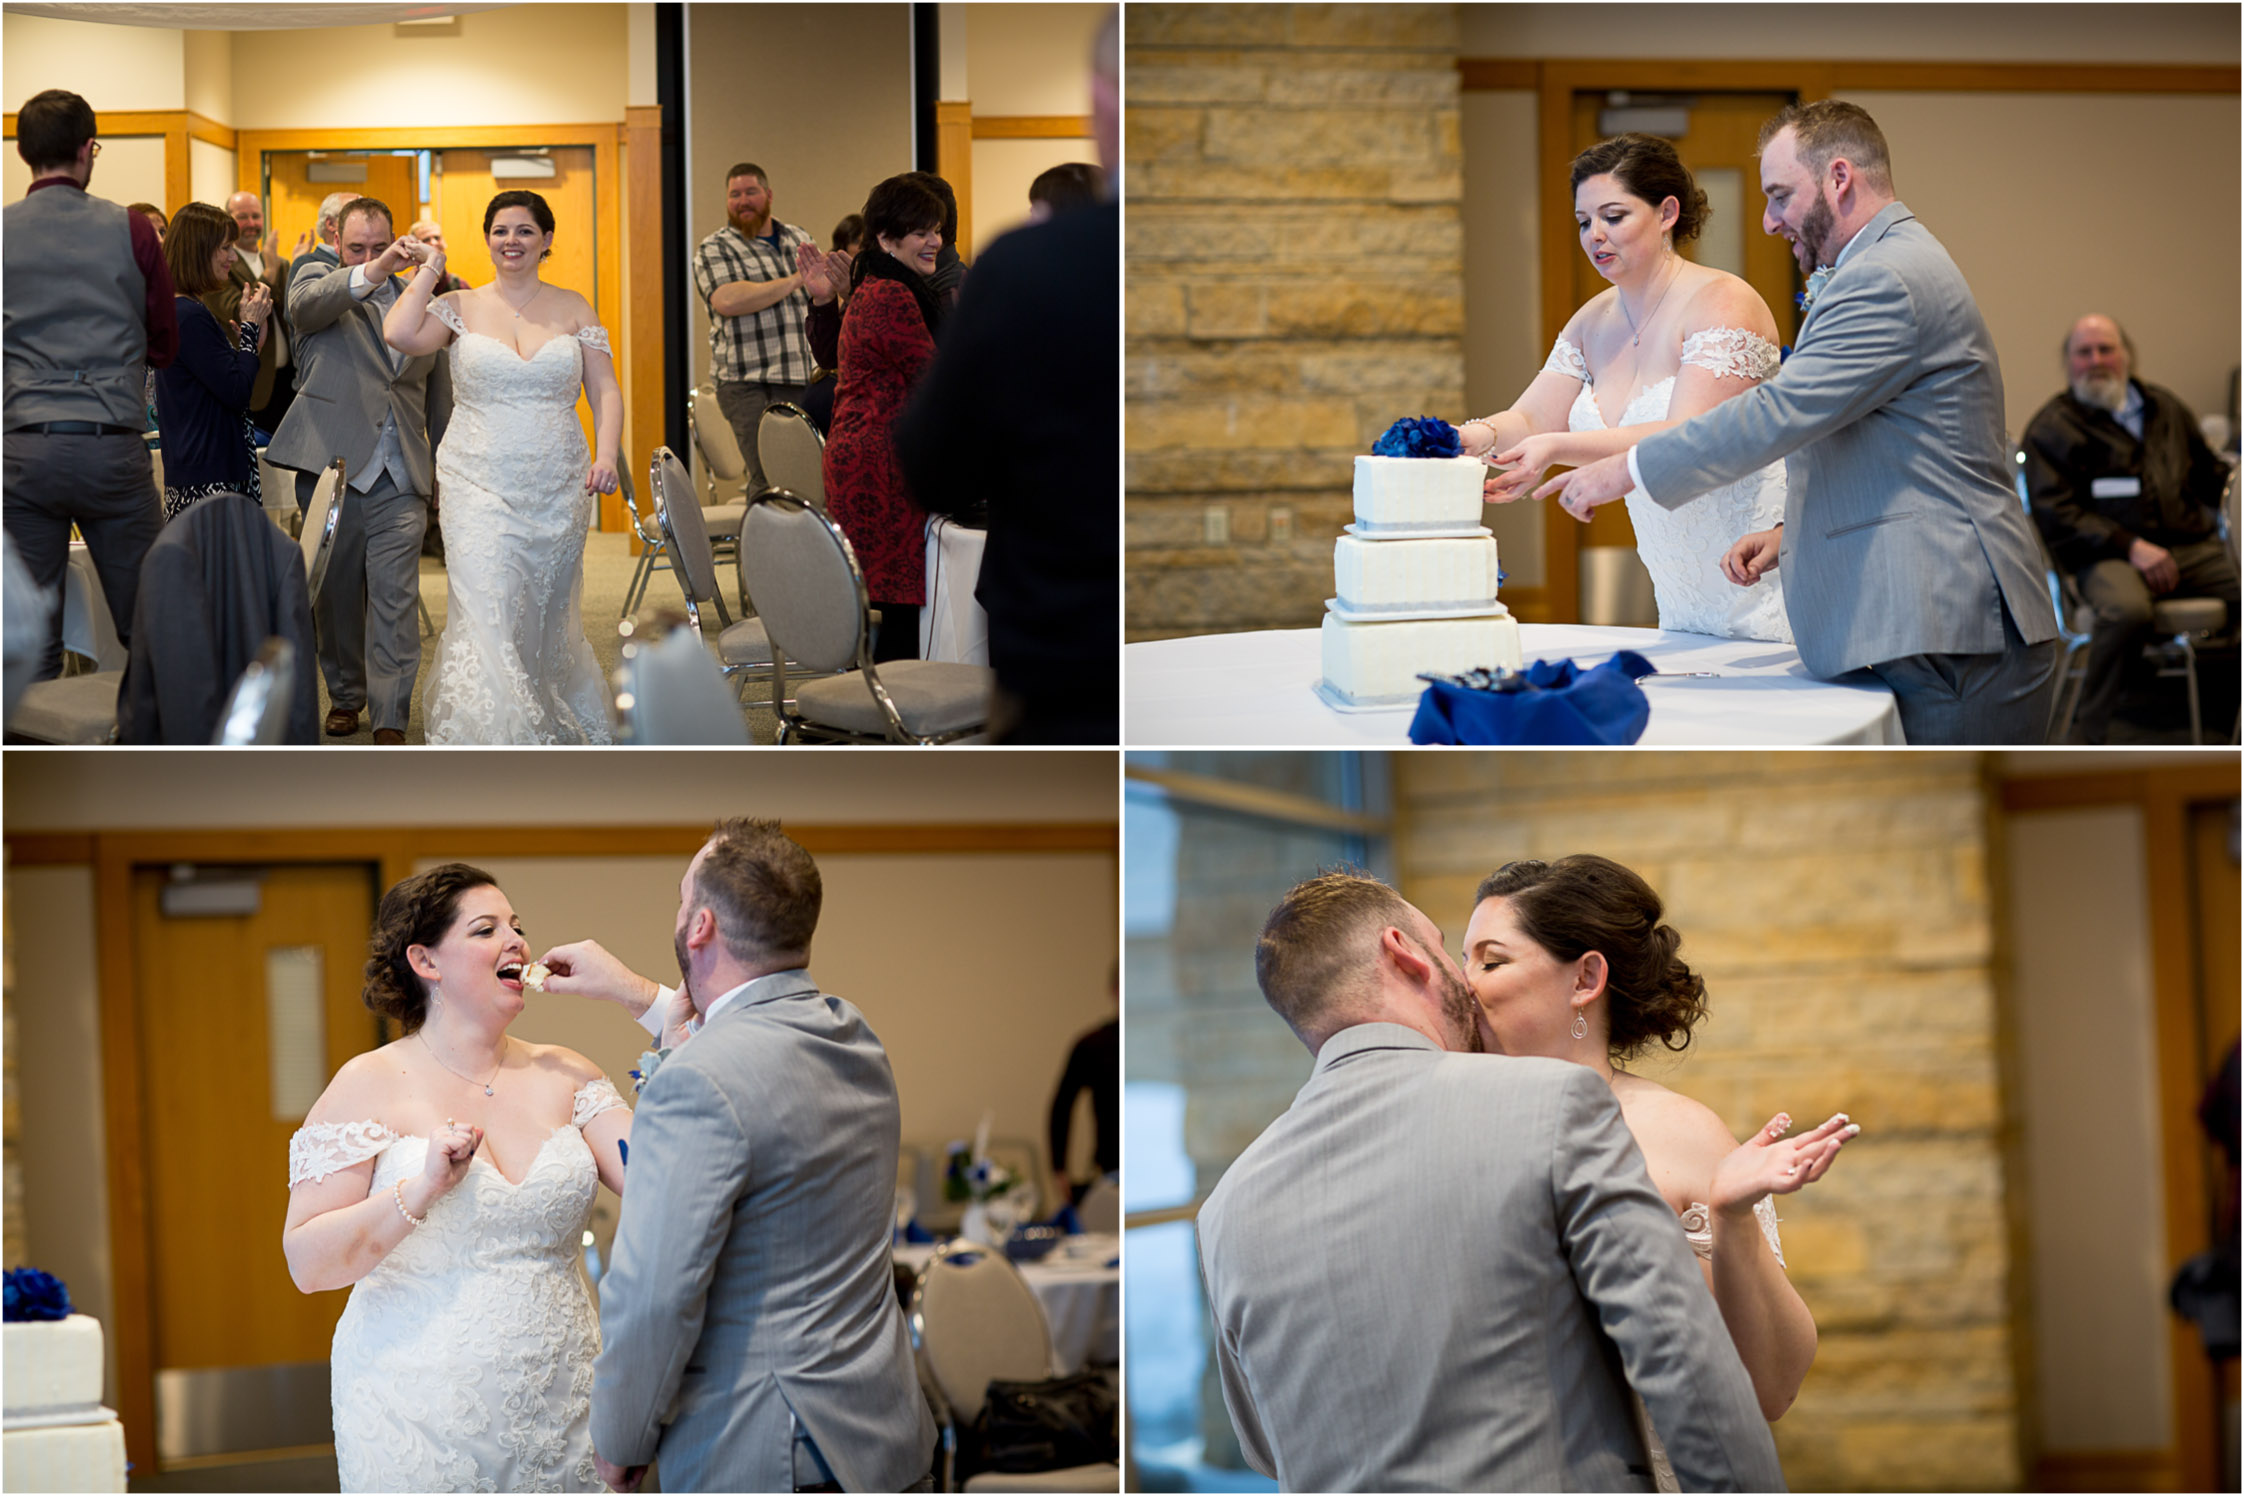 21-eagan-community-center-weddings-minnesota-winter-rain-wedding-reception-entrance-cake-cutting-mahonen-photography.jpg